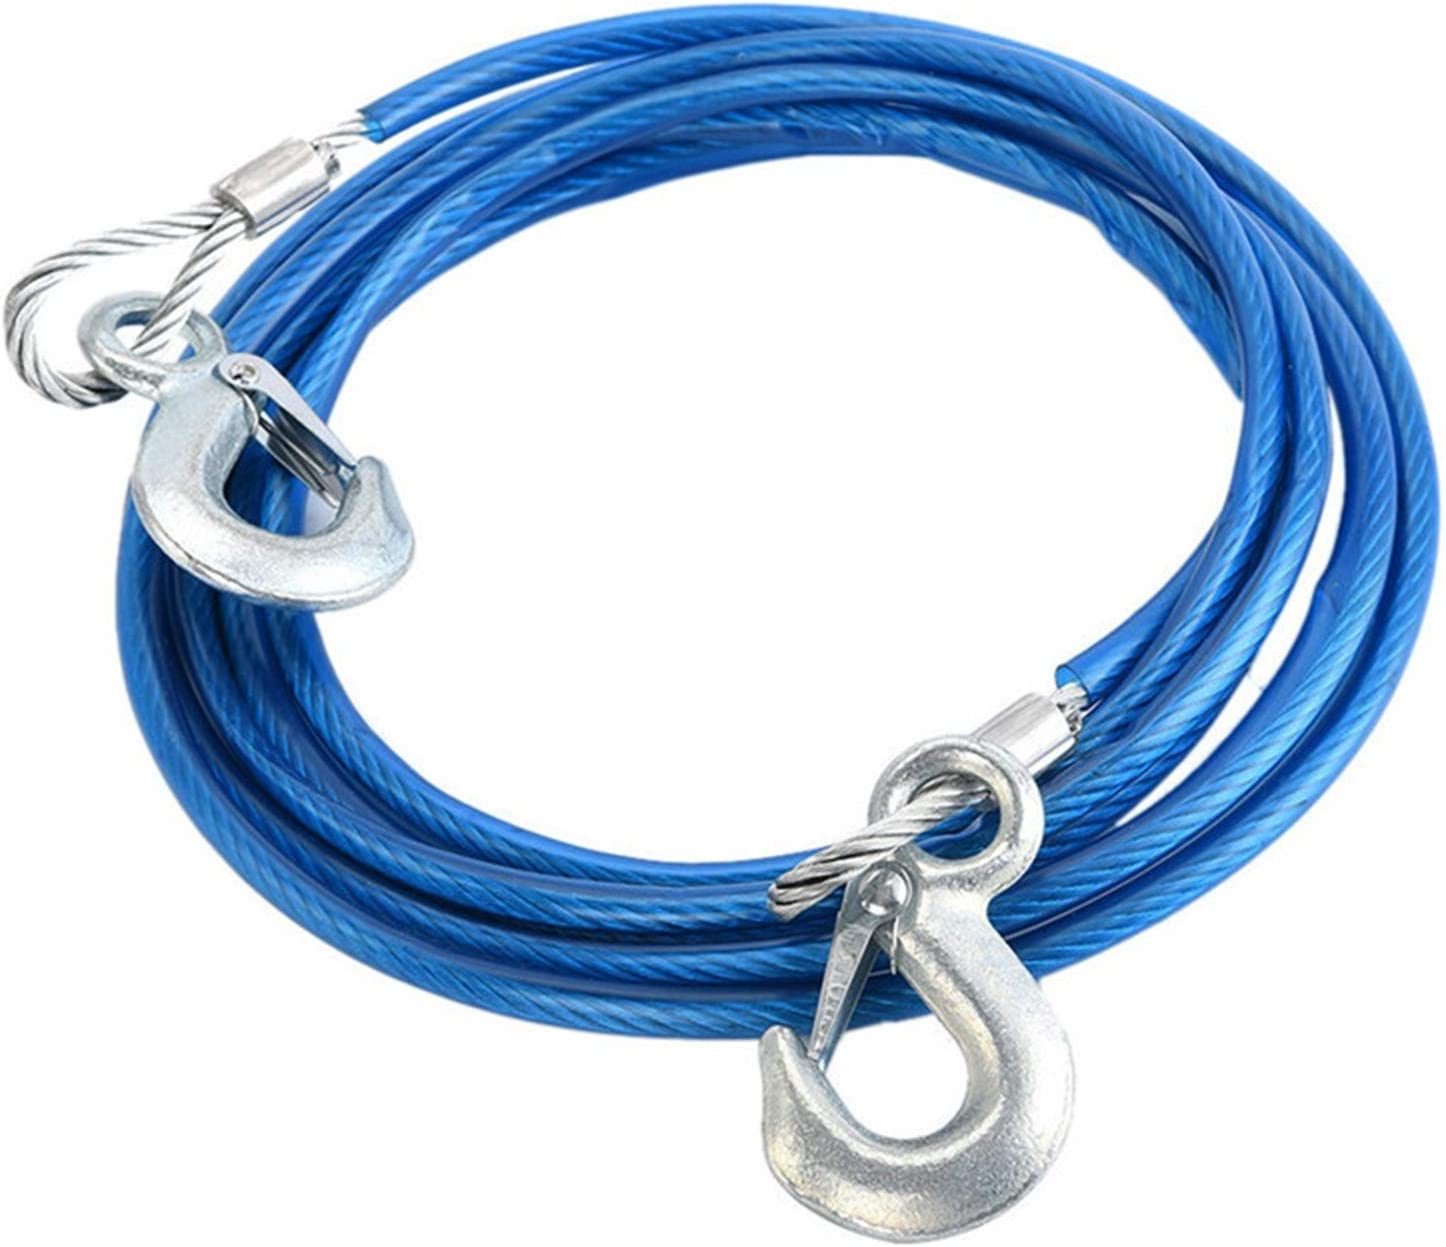 Challenge Challenge the lowest price the lowest price LAIQIAN Tow Hook Heavy Duty Ropes Cable 4M Wire 5 Tons High